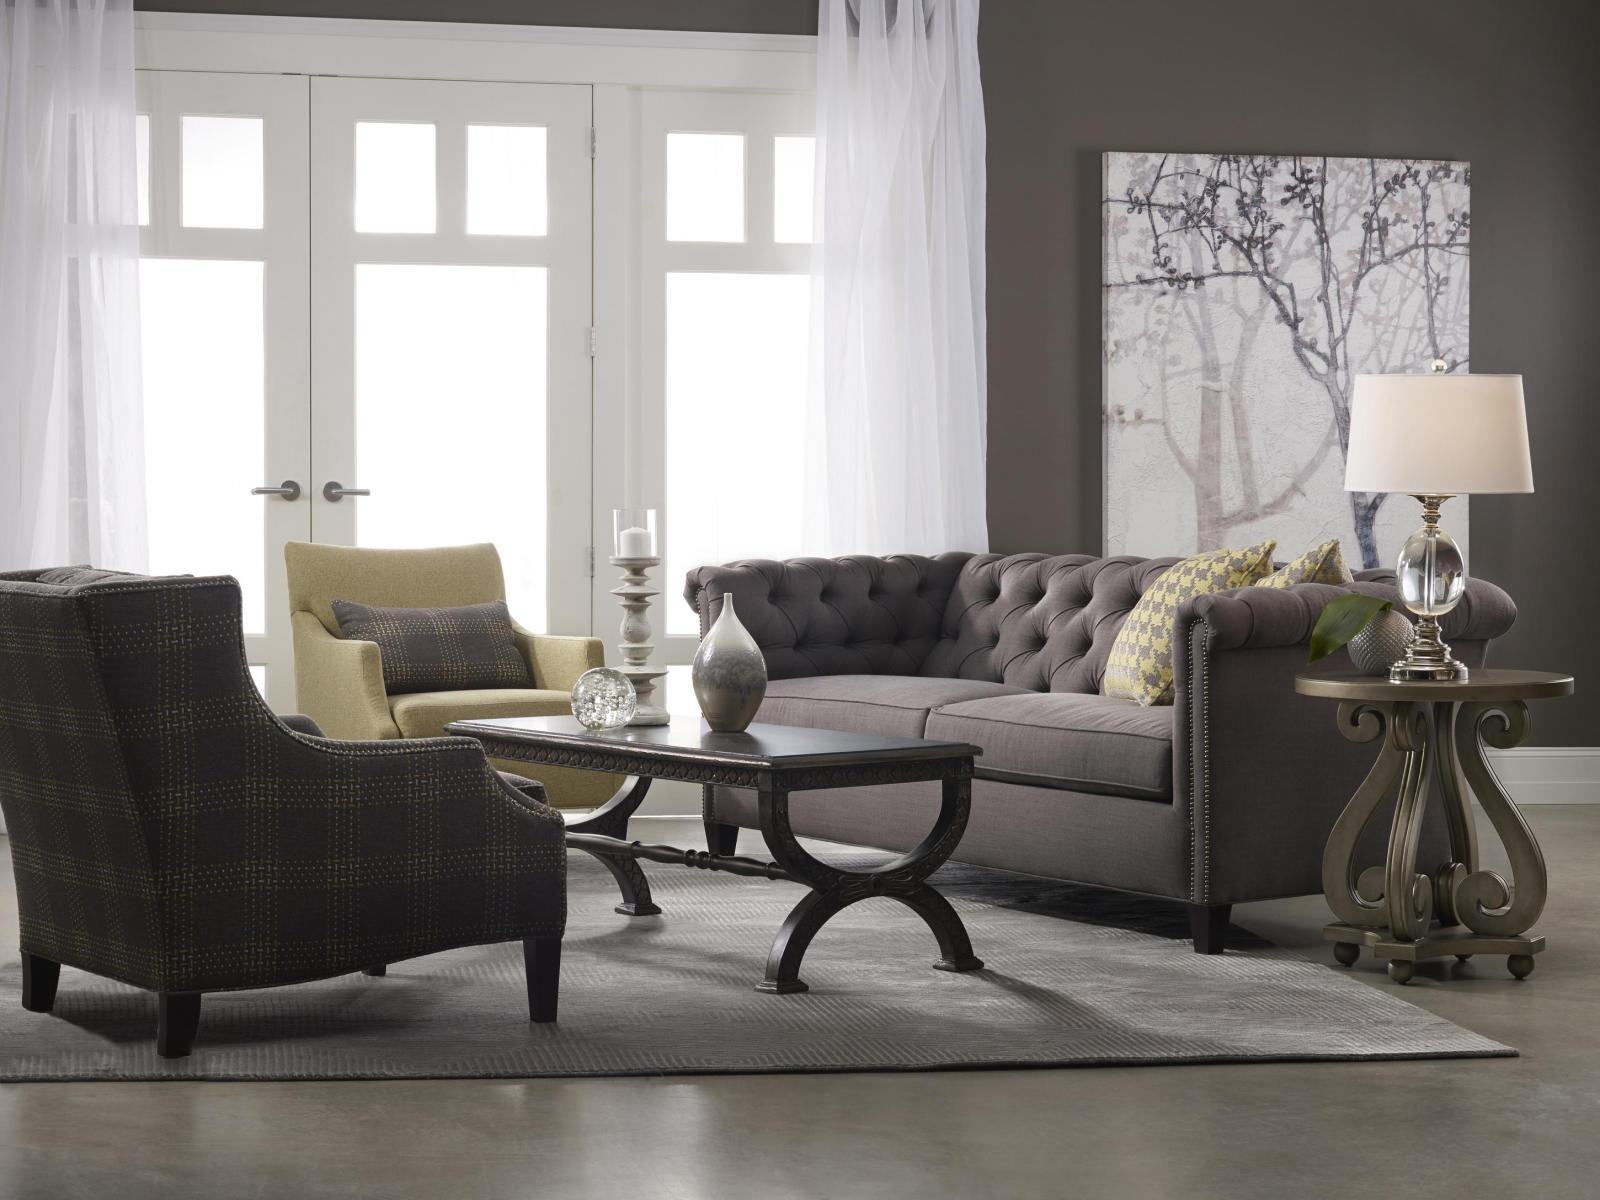 ▻ Sofa : 28 Amax Nebraska Chesterfield Genuine Leather Sofa Inside Chesterfield Sofa And Chairs (View 20 of 20)